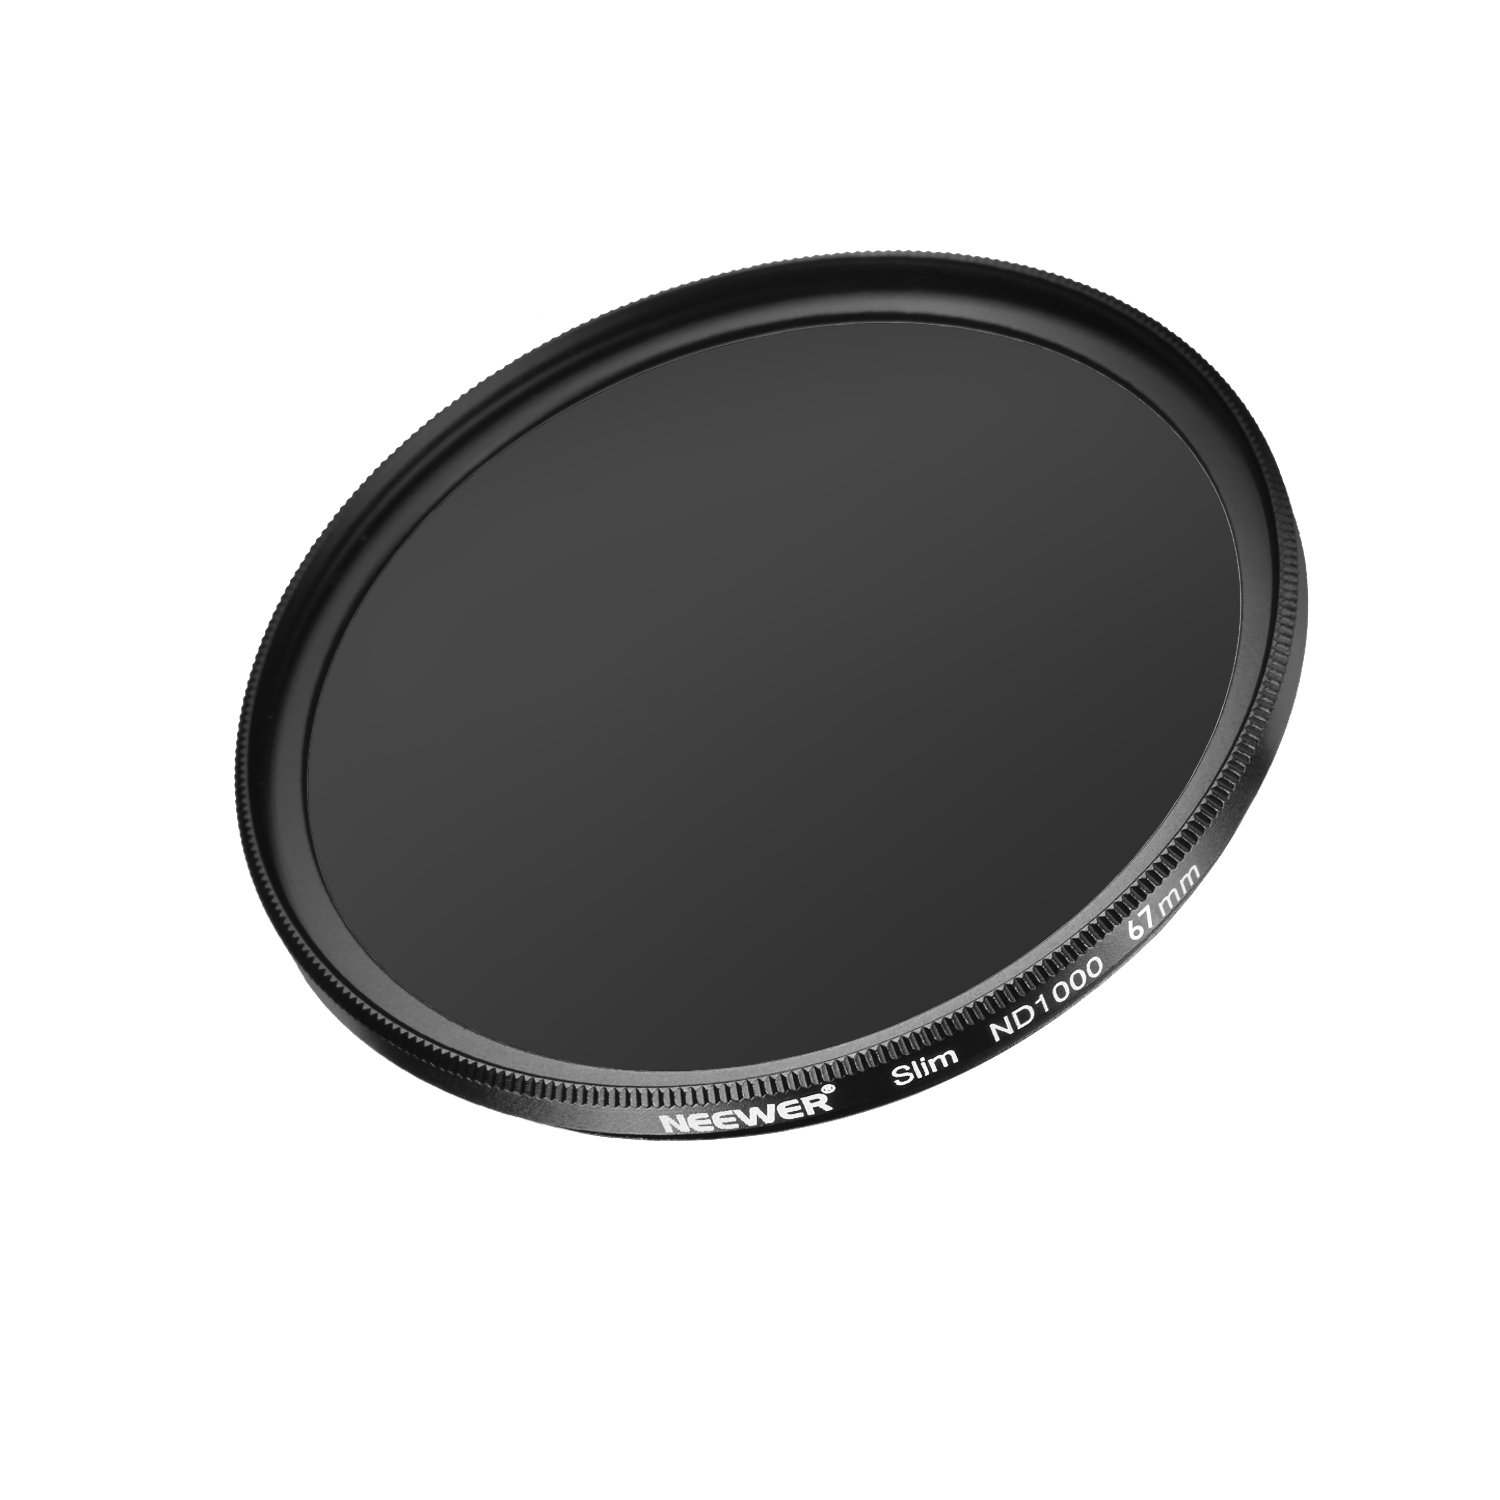 Neewer Slim 67MM Neutral Density ND 1000 Camera Lens Filter 10 Stop Optical Glass and Matte Black Flame for Lens with 67MM Thread Size, Ideal for Wide Angle Lenses